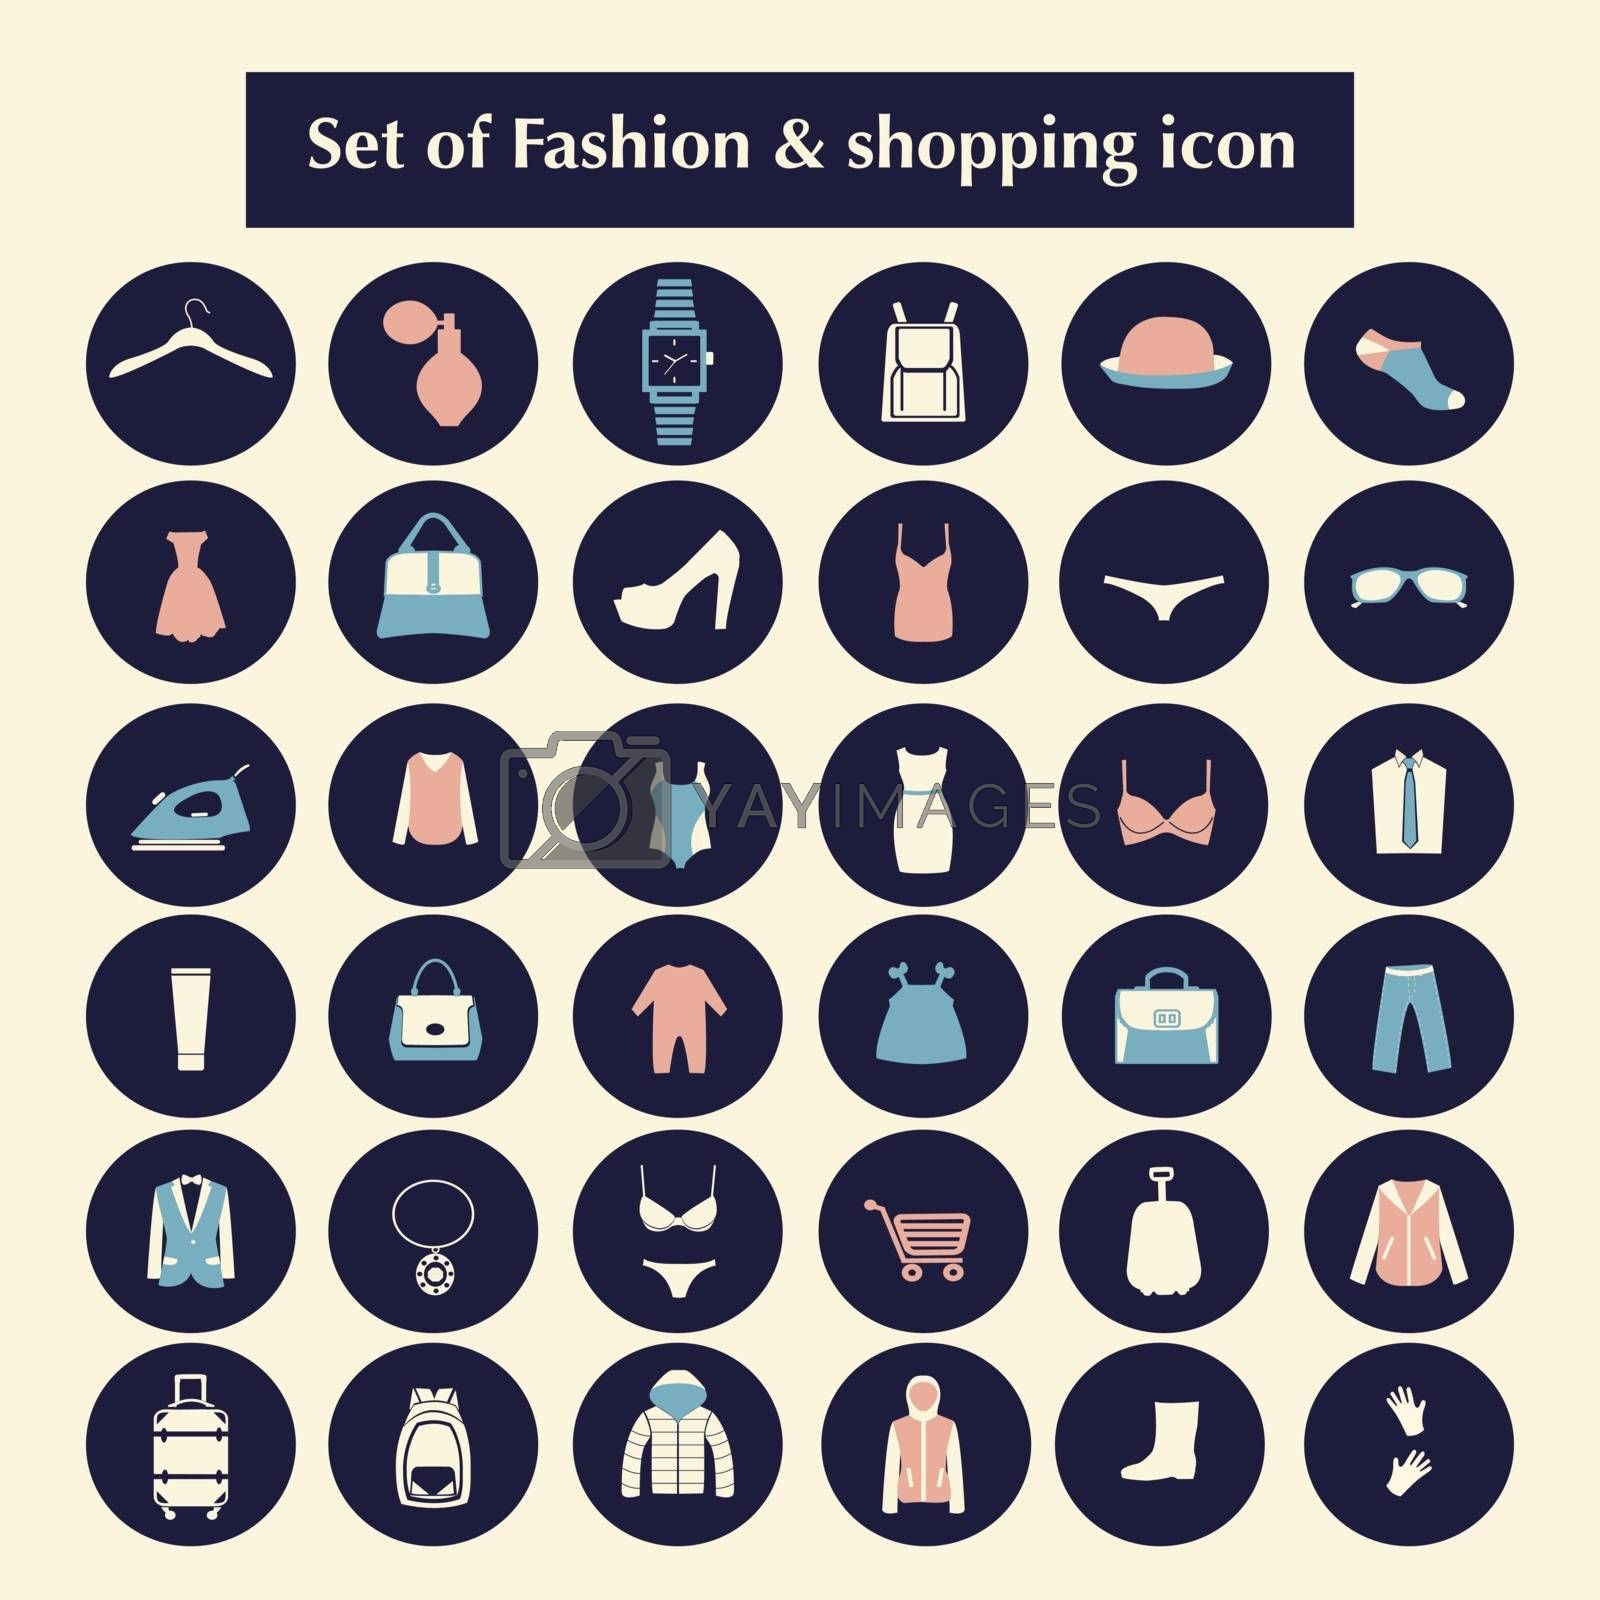 Shopping and Fashion related icons made in circle shape. Clothing and accessories set icons-illustration